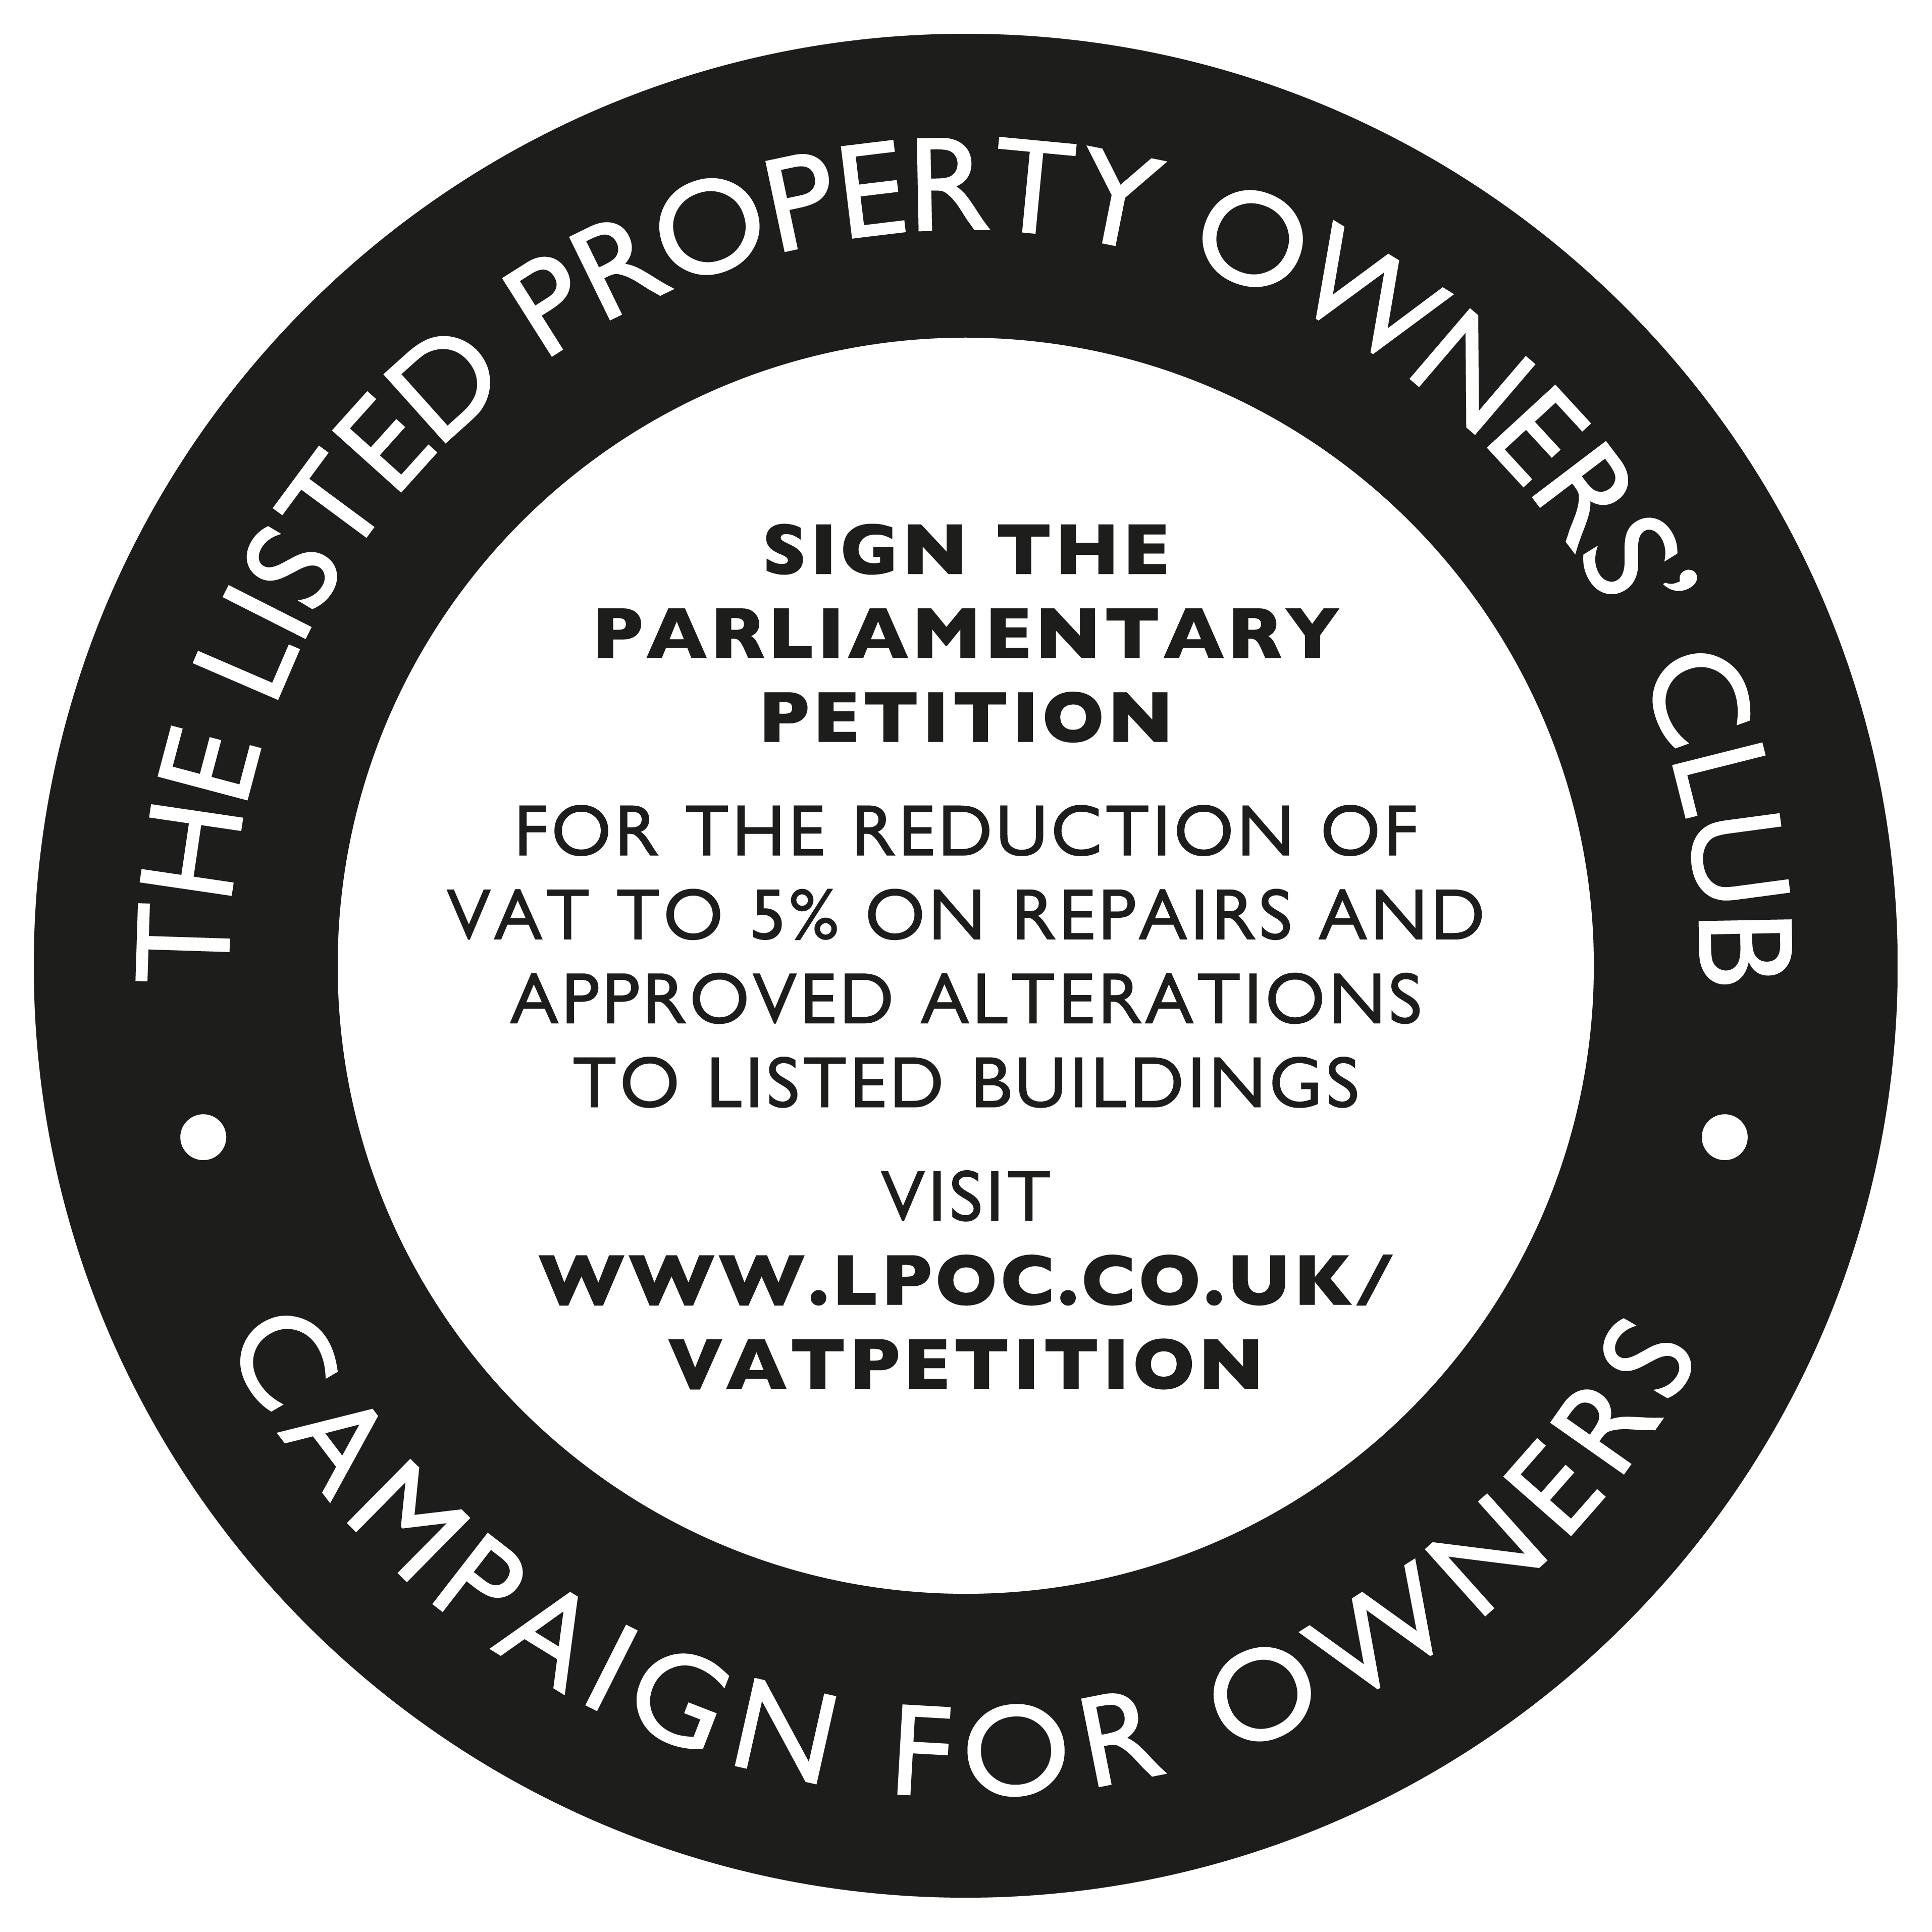 Click the logo to sign the petition